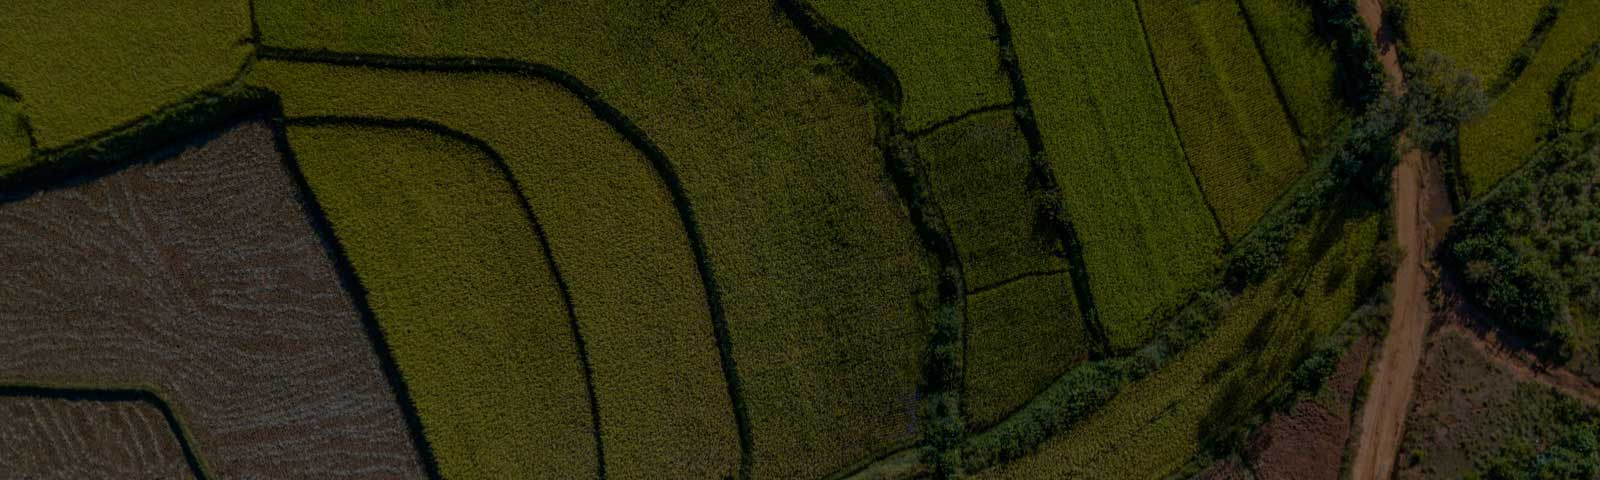 Aerial view of fields in geometric pattern